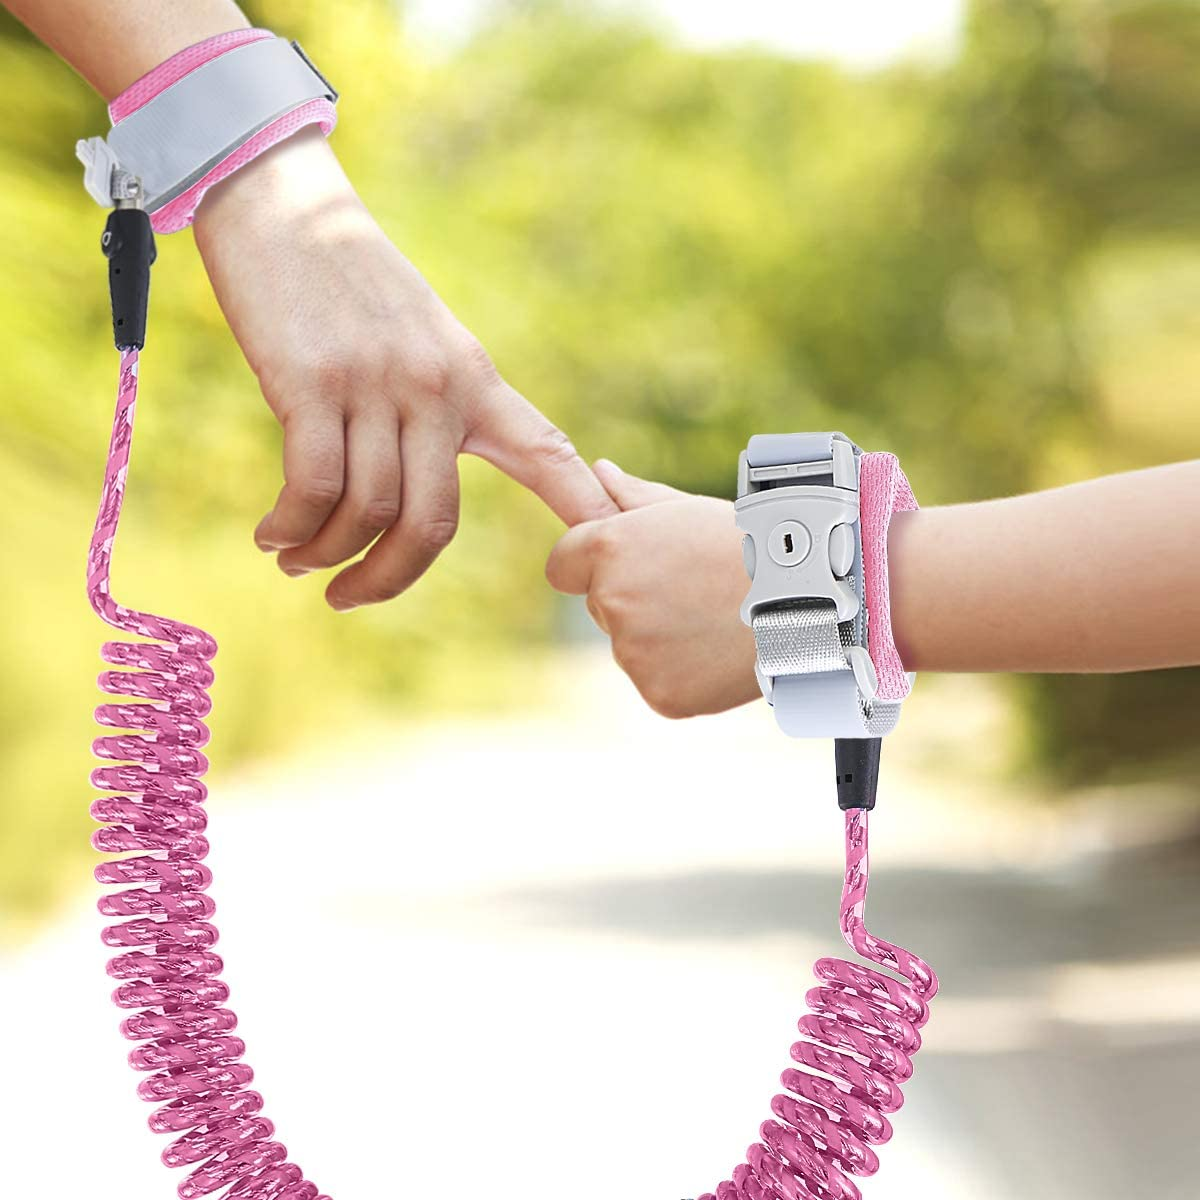 Baby Harness Flexible Adjustable Child Walking Strap Josopa Anti Lost Wrist Link Belt 360/°Rotation and Retractability Wrist Harness Set Belts and Wristband 2-in-1 Combination Kit